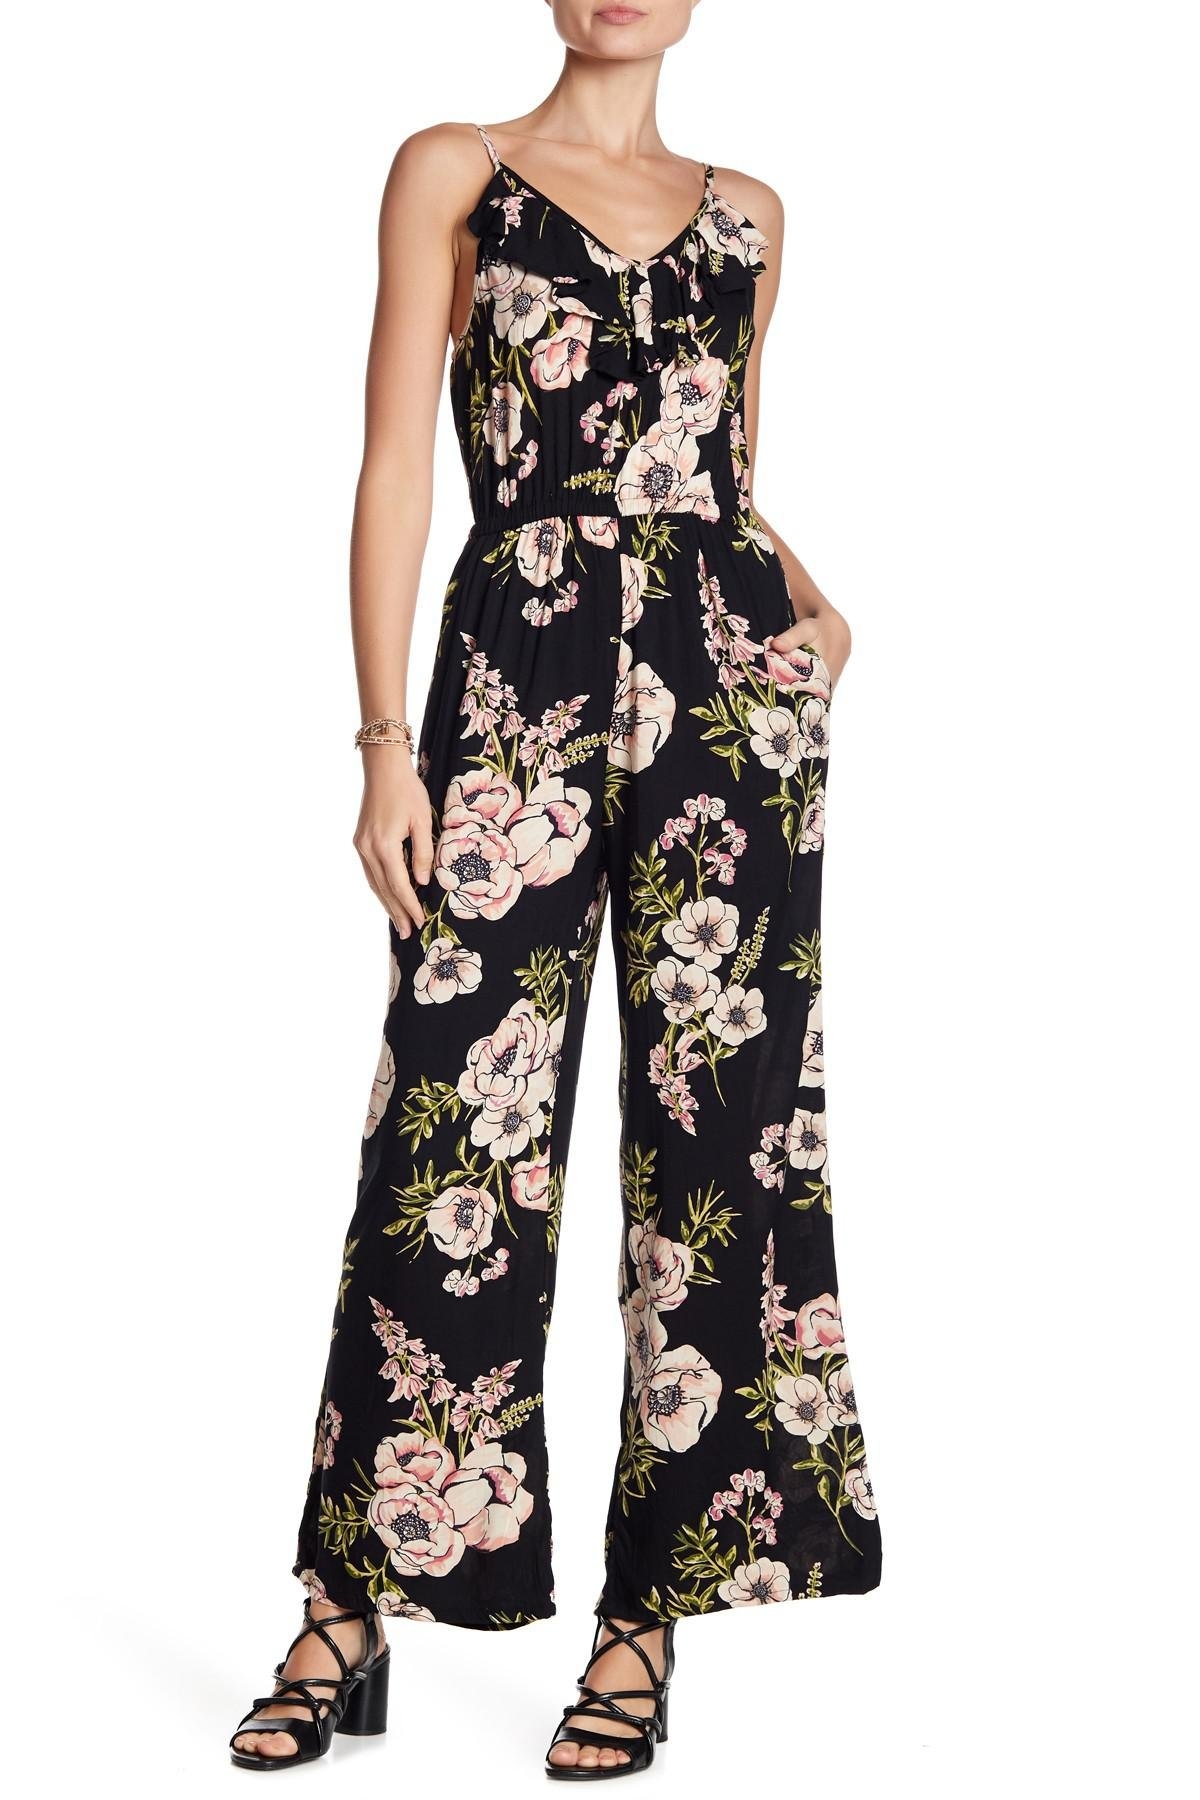 45a7ad73d6f3 Lyst - Angie Floral Ruffle Wide Leg Jumpsuit in Black